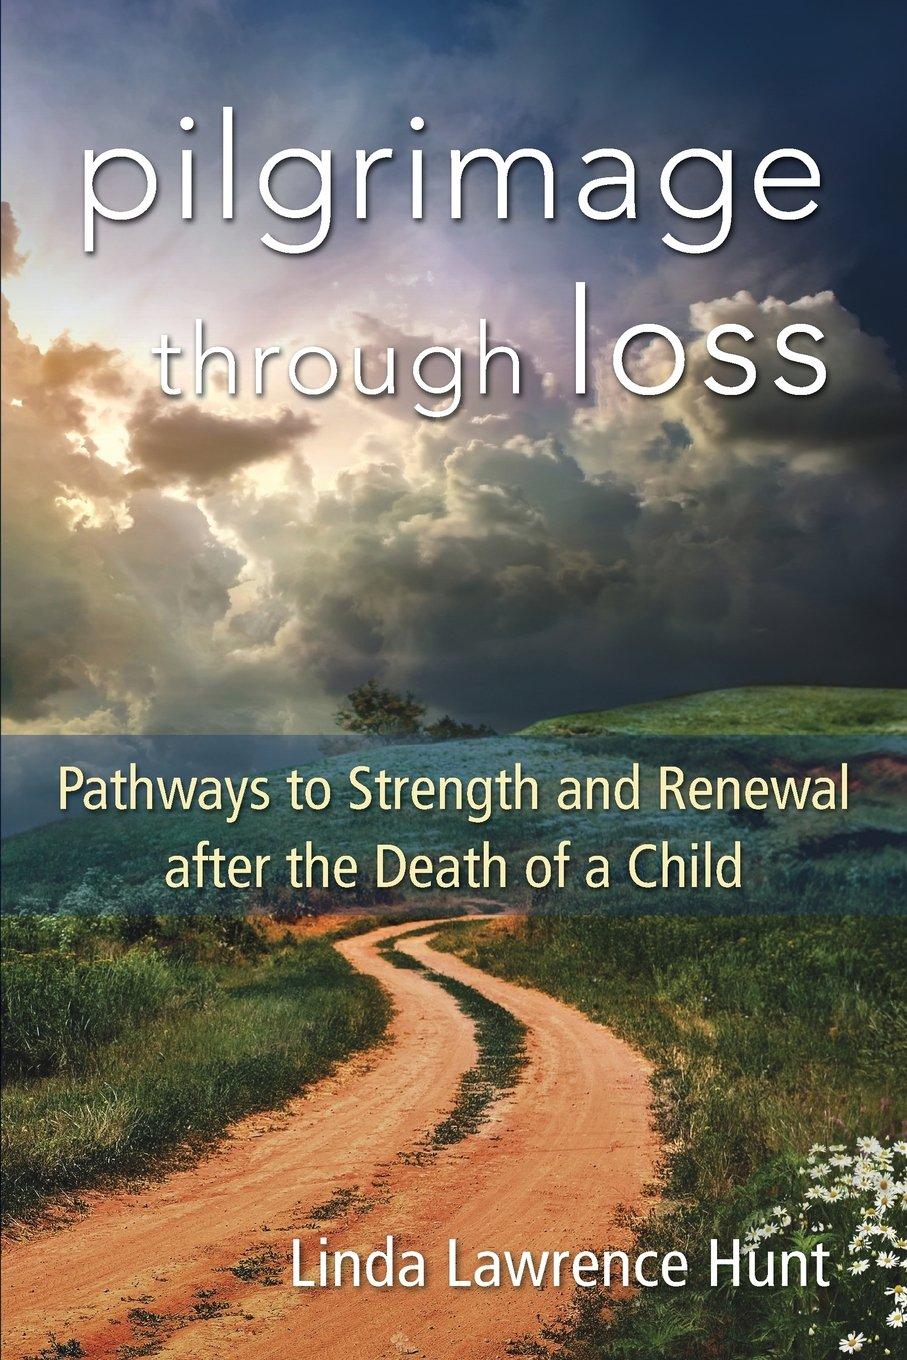 Chat with Linda Hunt, author of Pilgrimage Through Loss